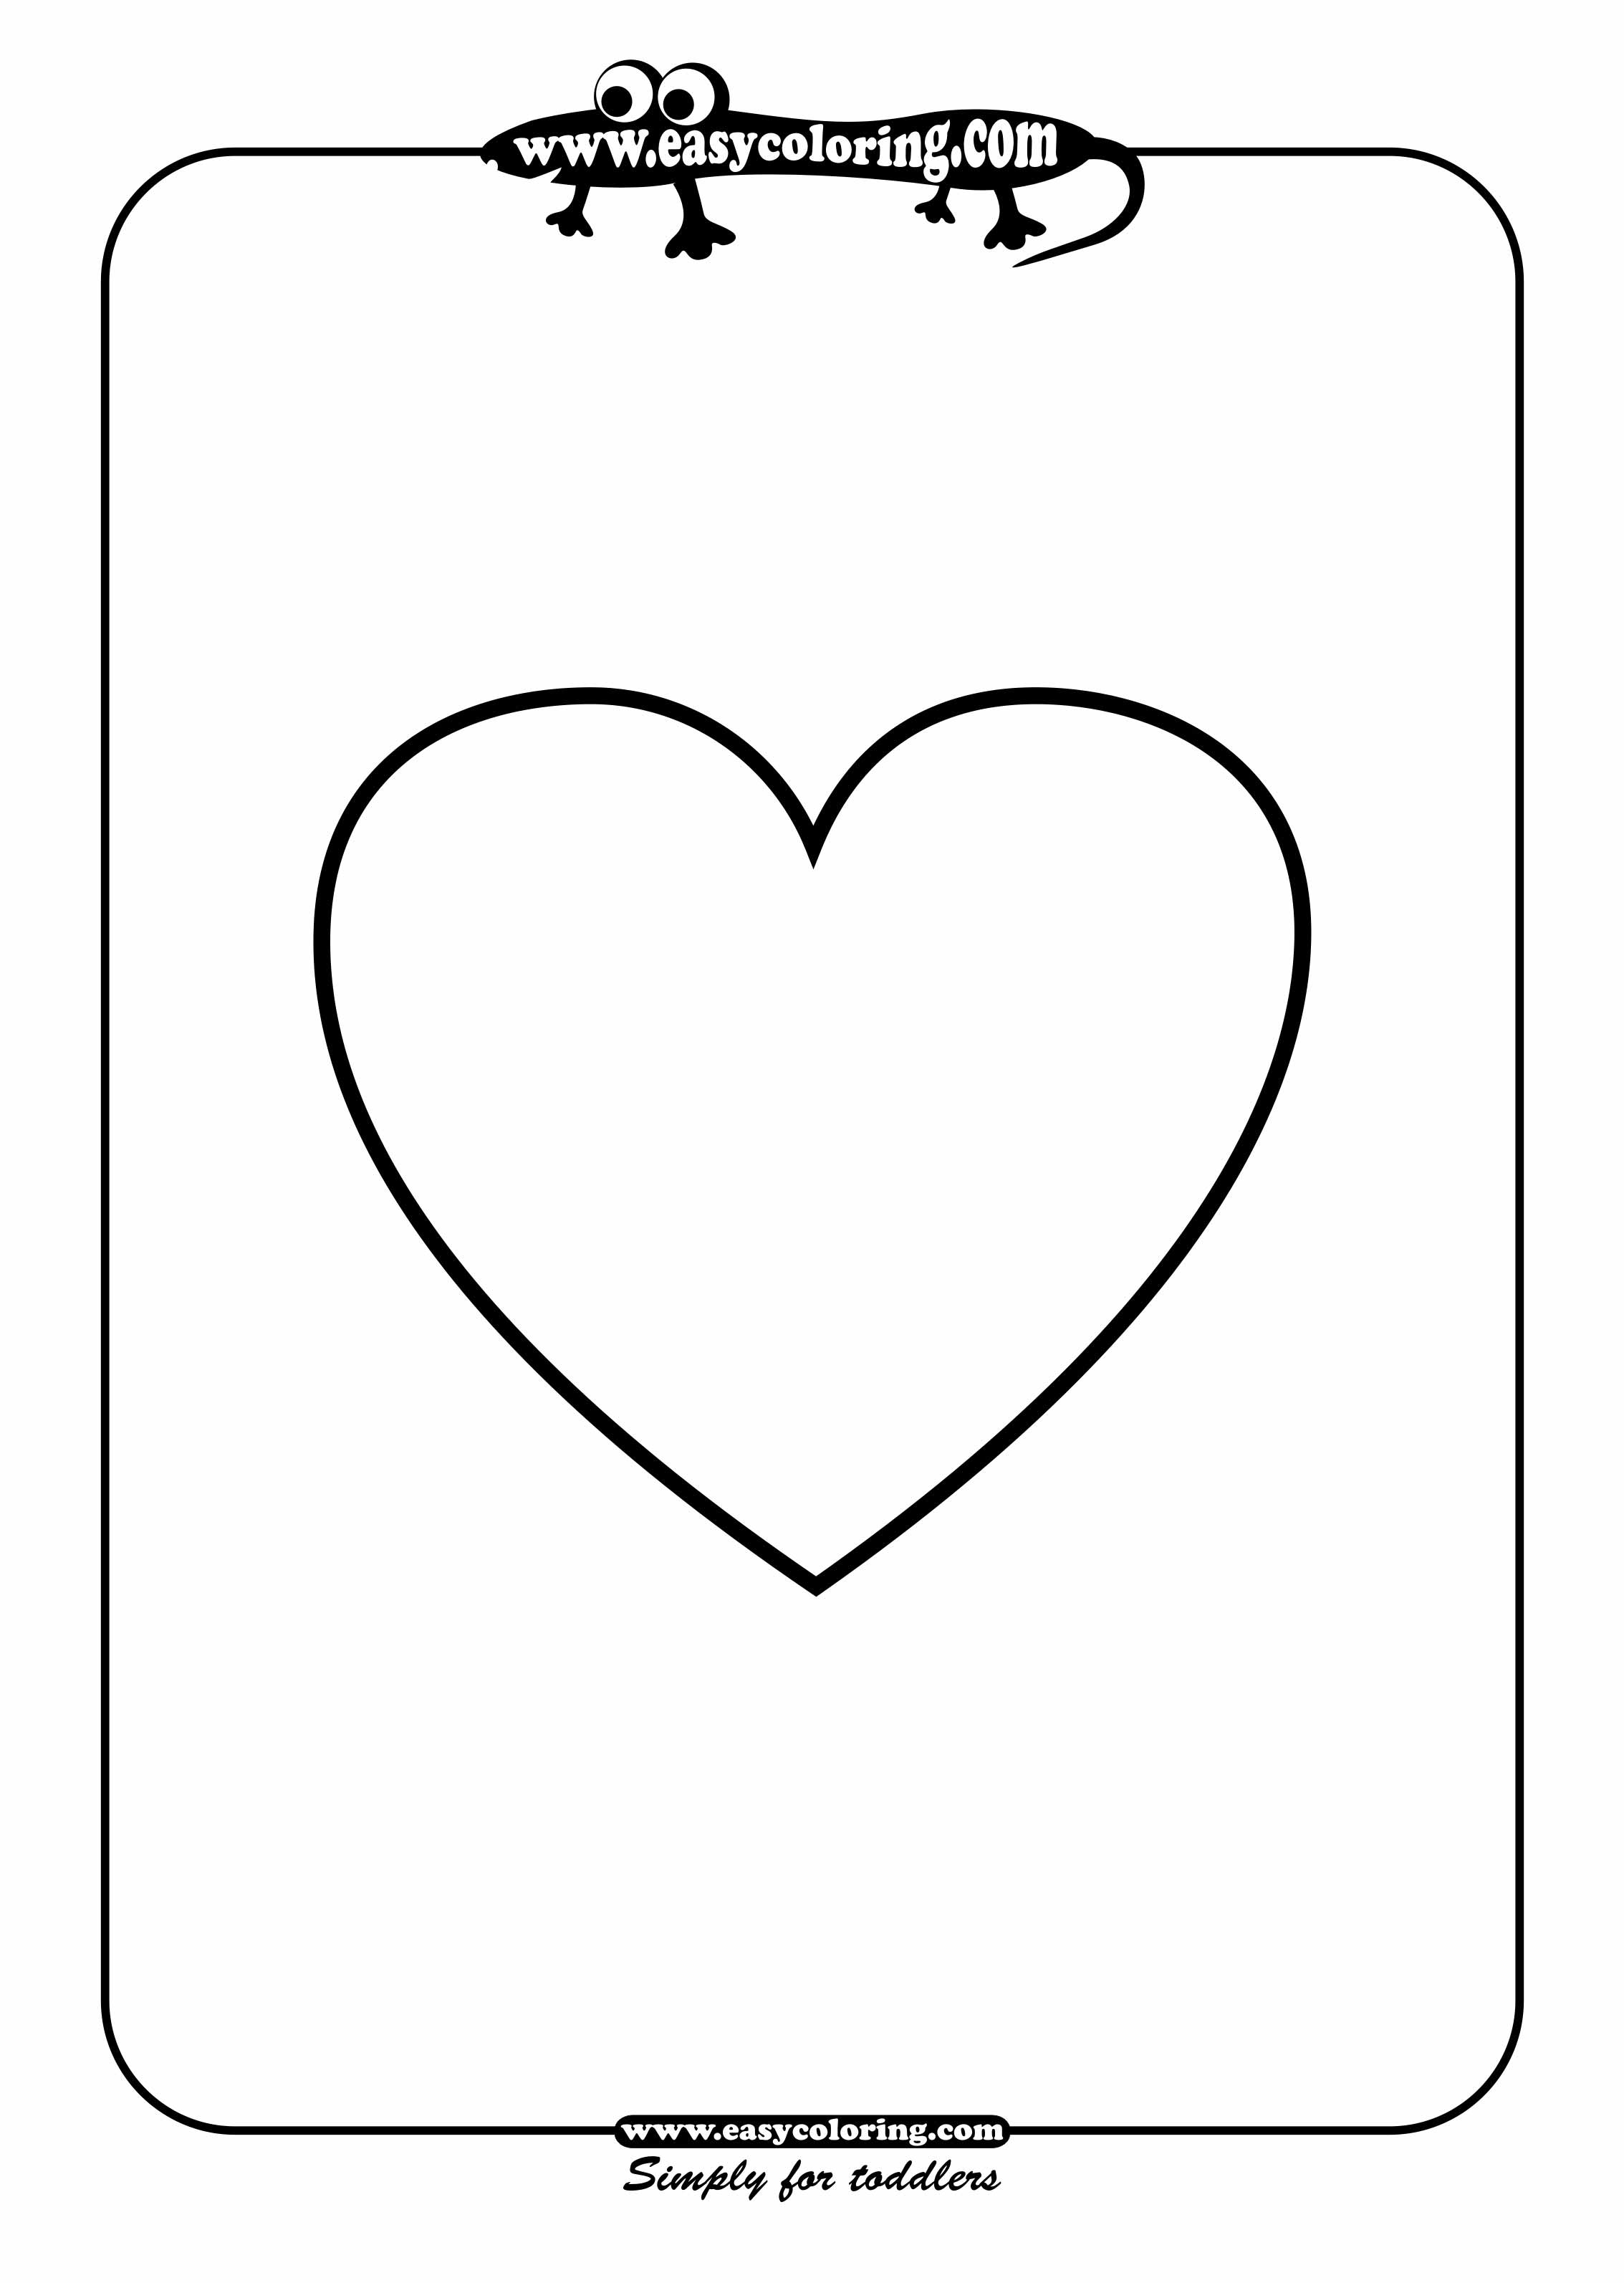 Heart  Easy coloring shapes Simple pages for toddlers